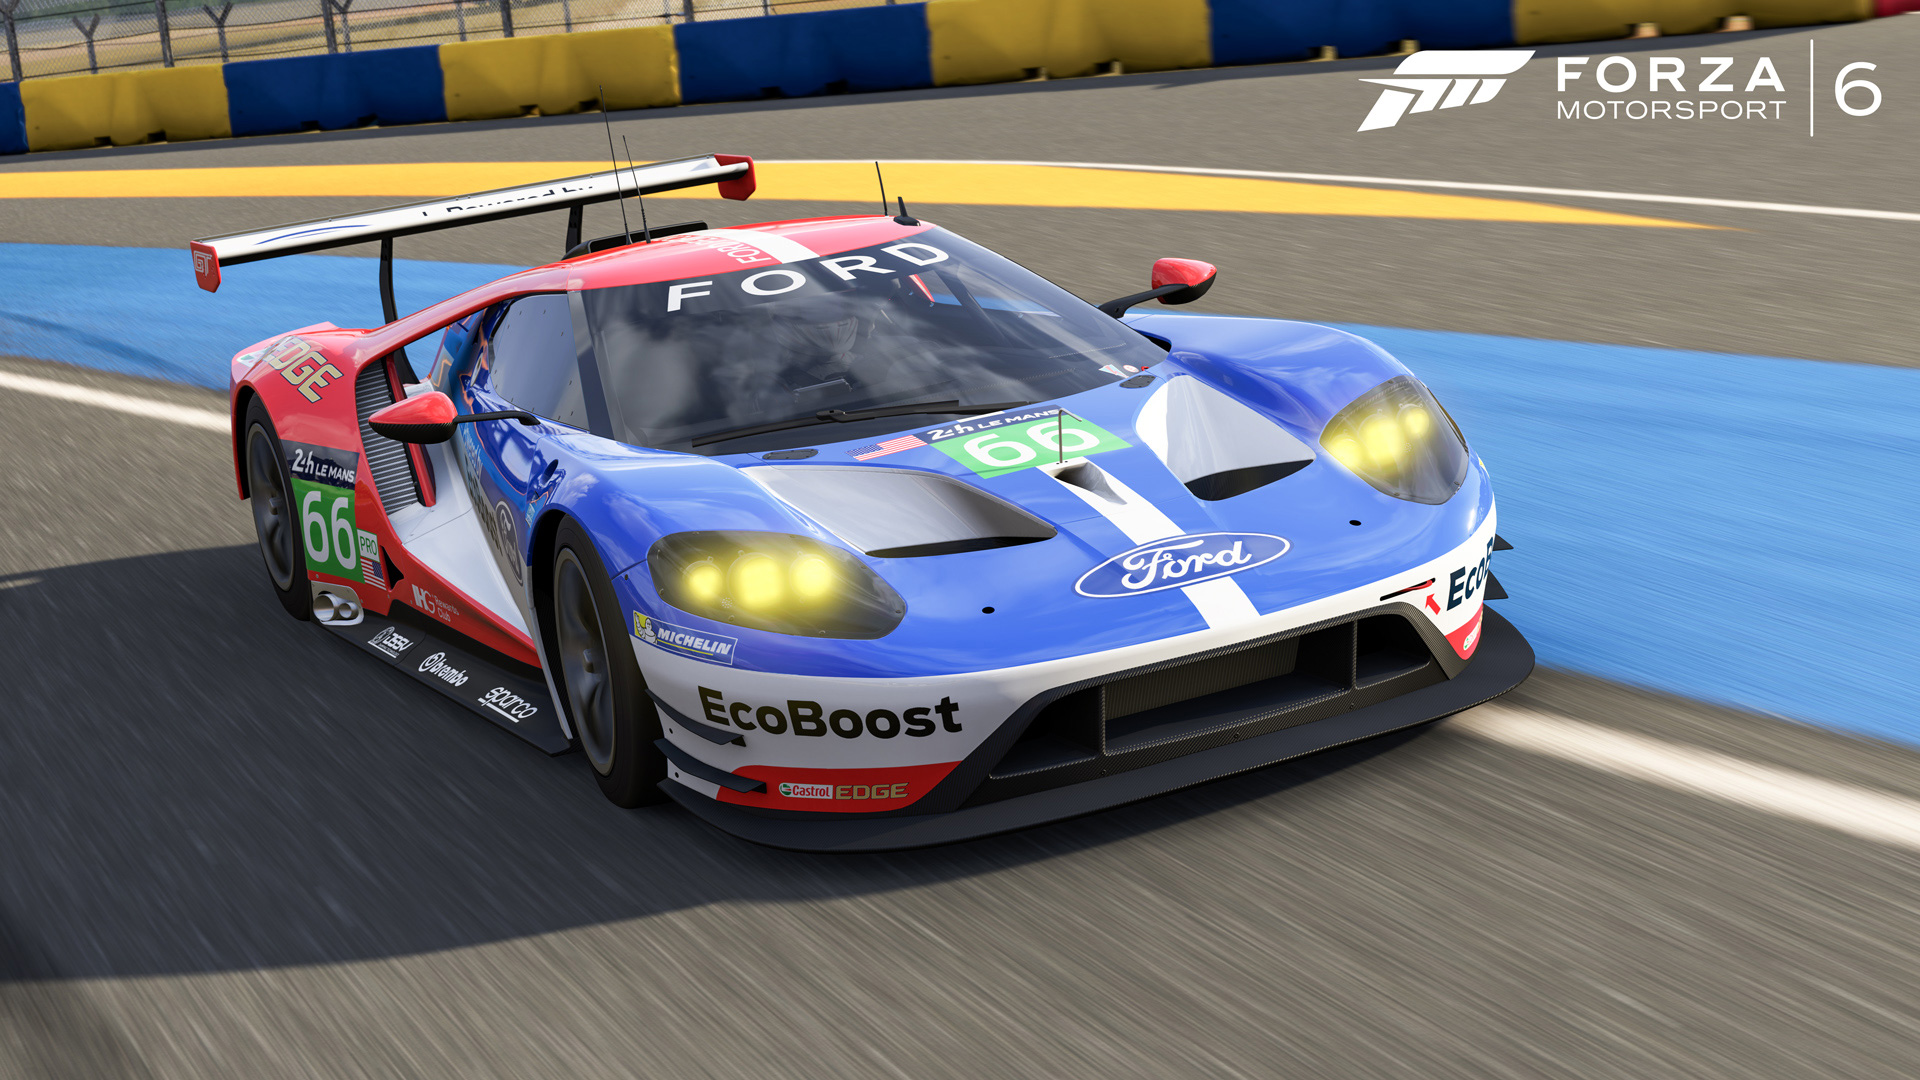 Free Forza 6 DLC codes mailing out to celebrate upcoming championship - VG247